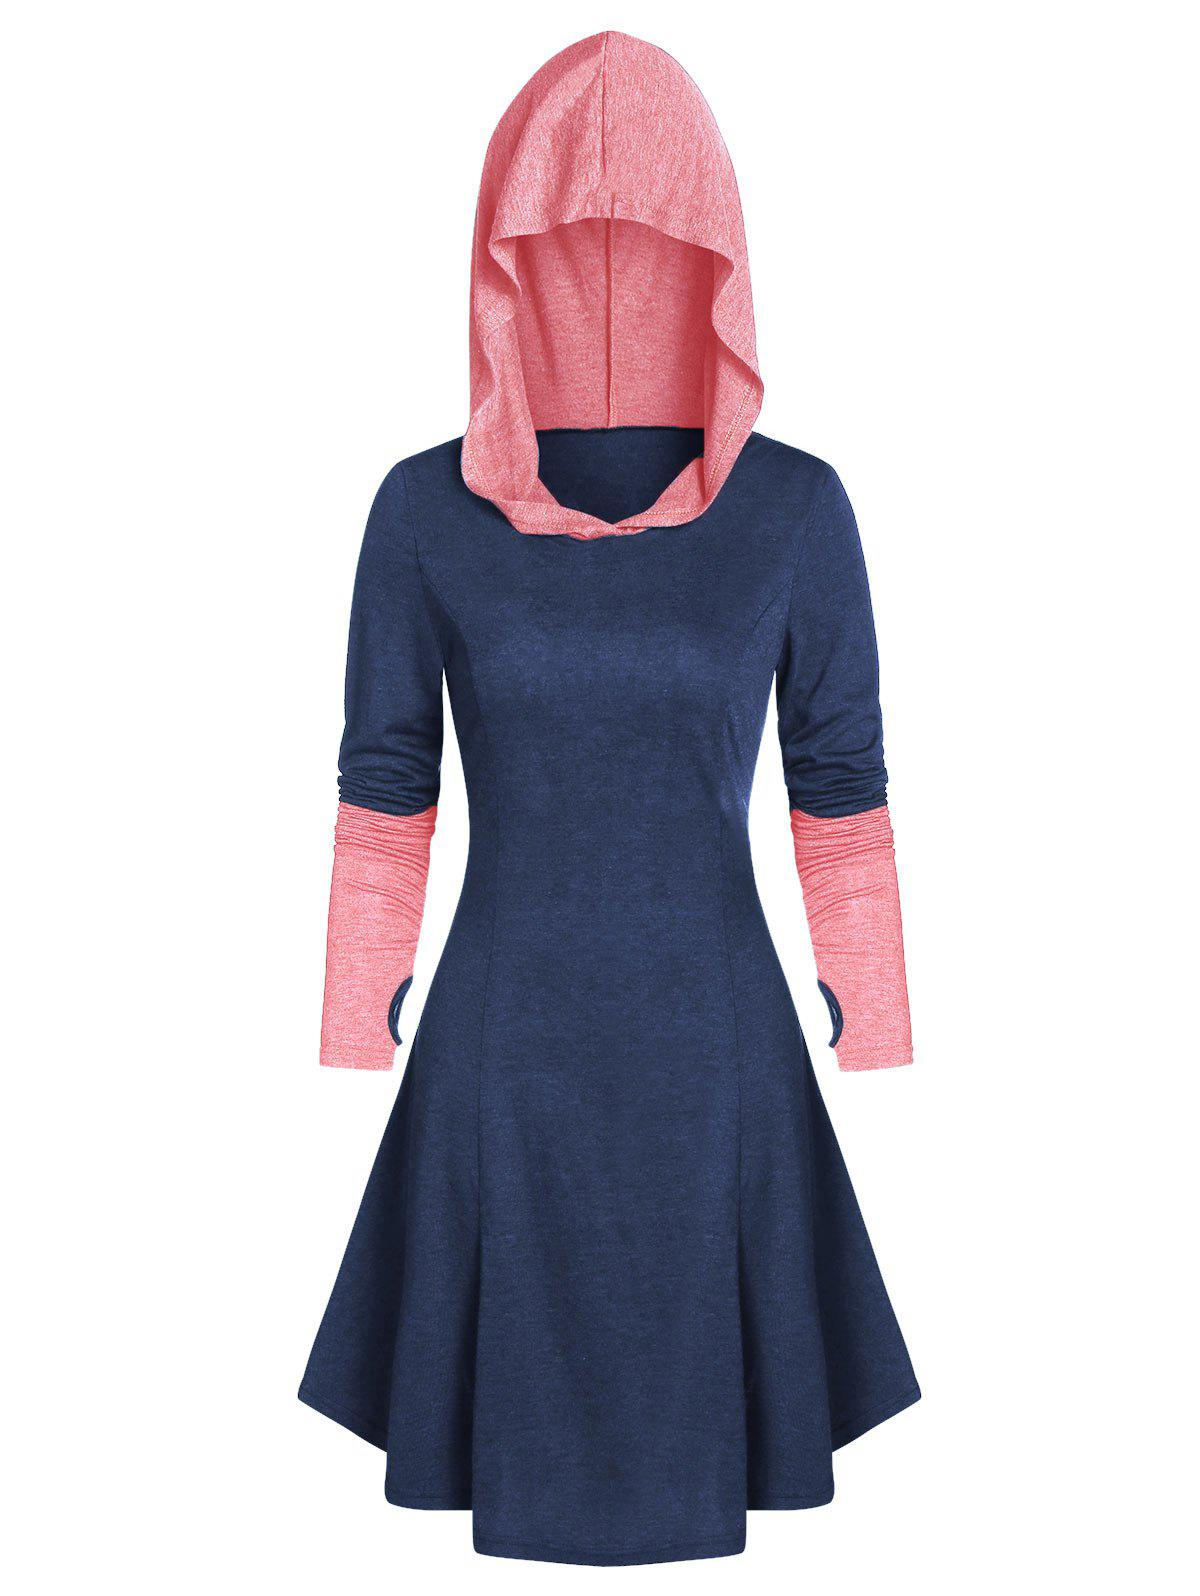 Hooded Glove Sleeve Lace-up Contrast Flare Dress - MIDNIGHT BLUE 3XL